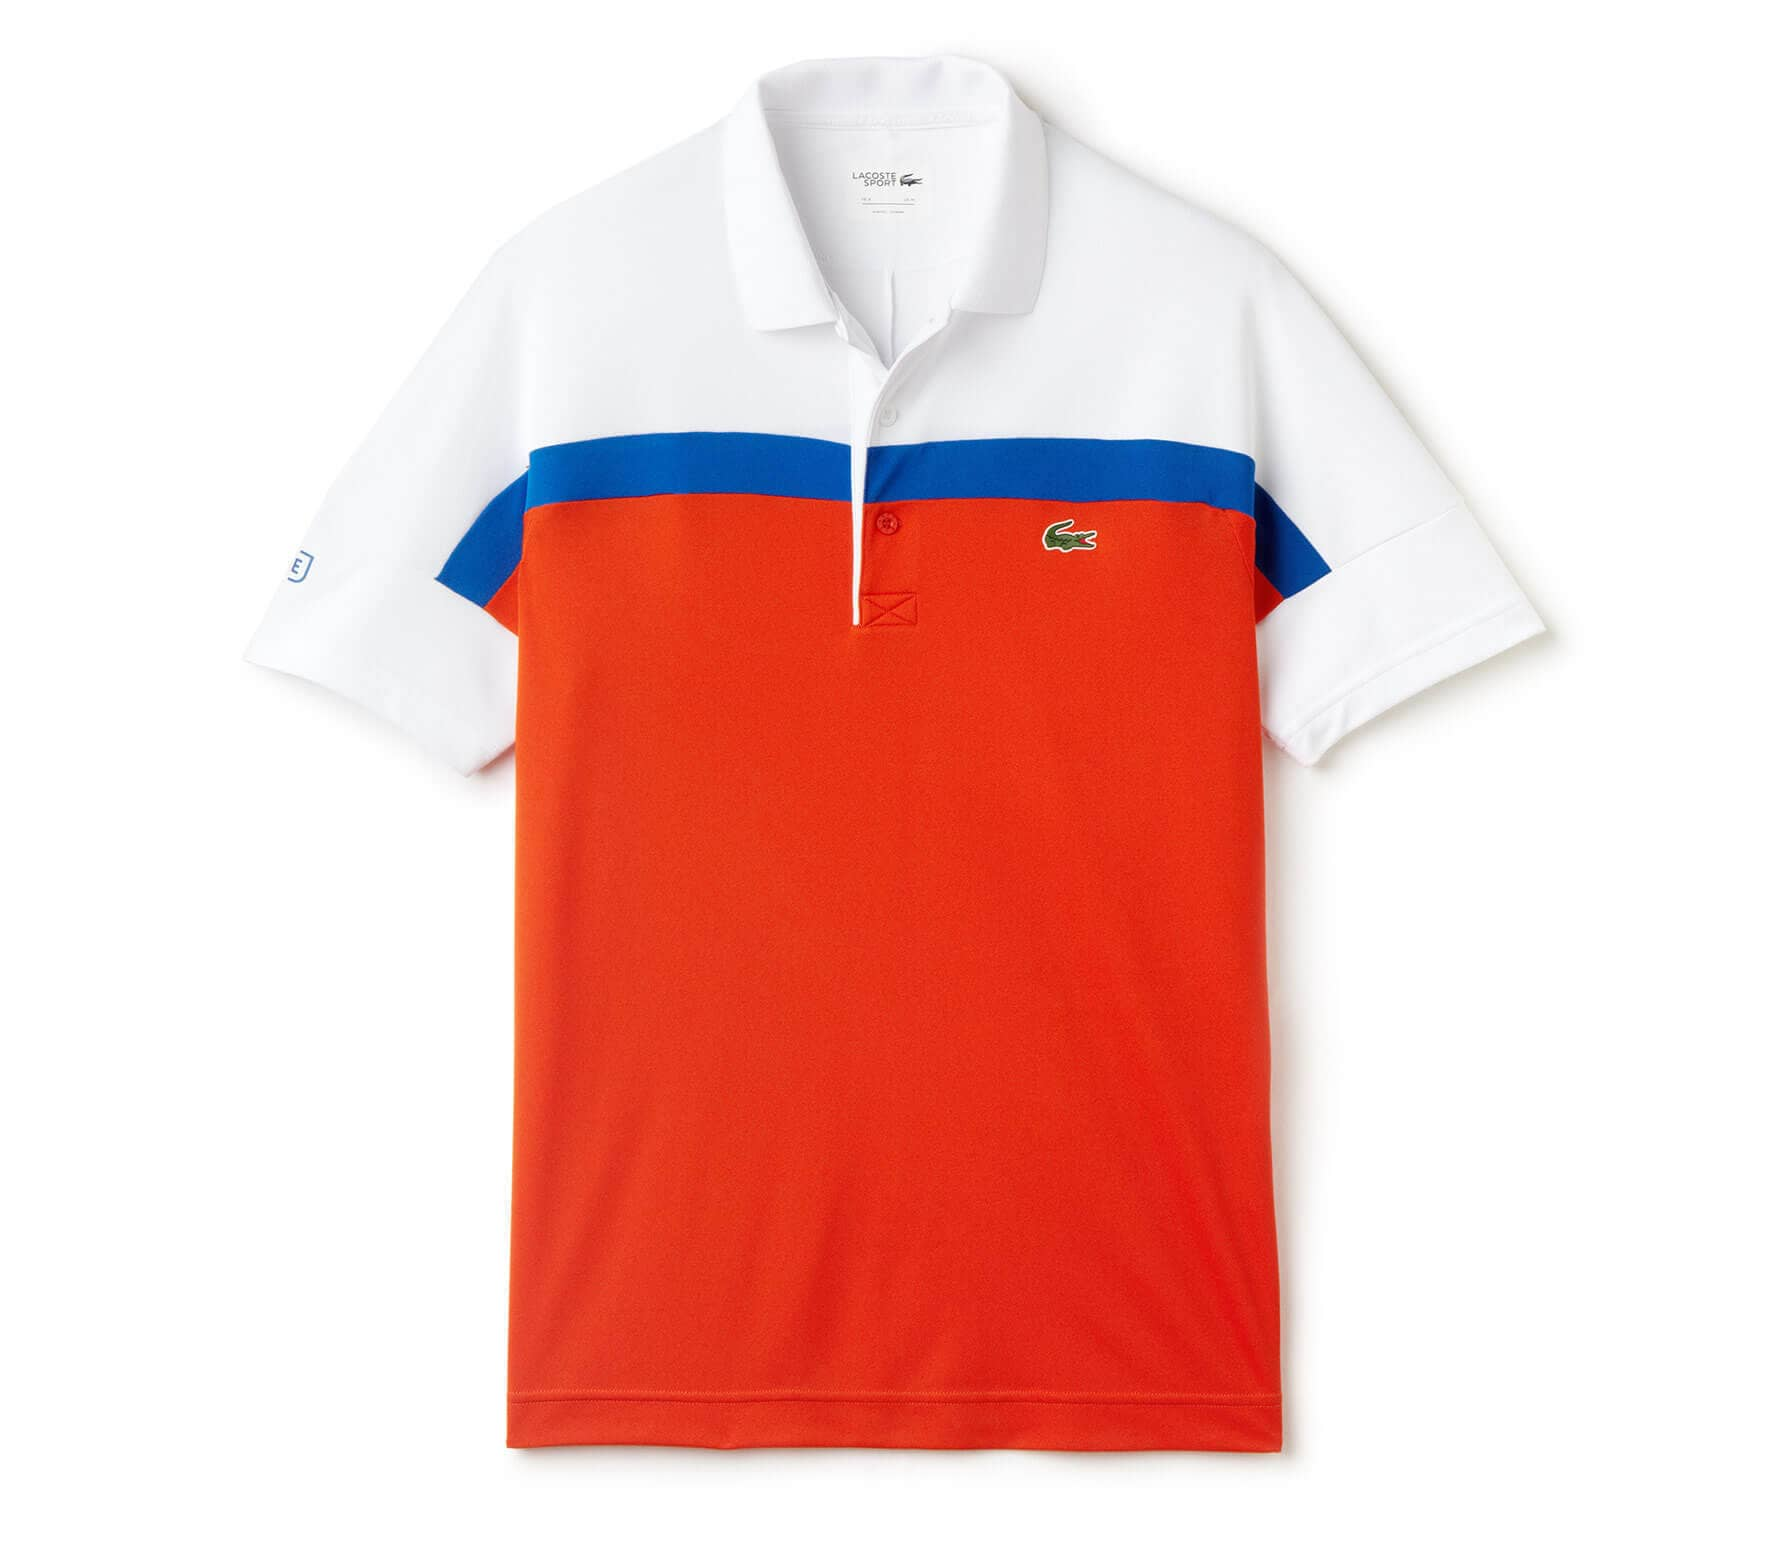 a6a9f5b463e0 Lacoste - Roland Garros Shortsleeve Ribbed Collar Hommes Tennis Polo (rouge  blanc)